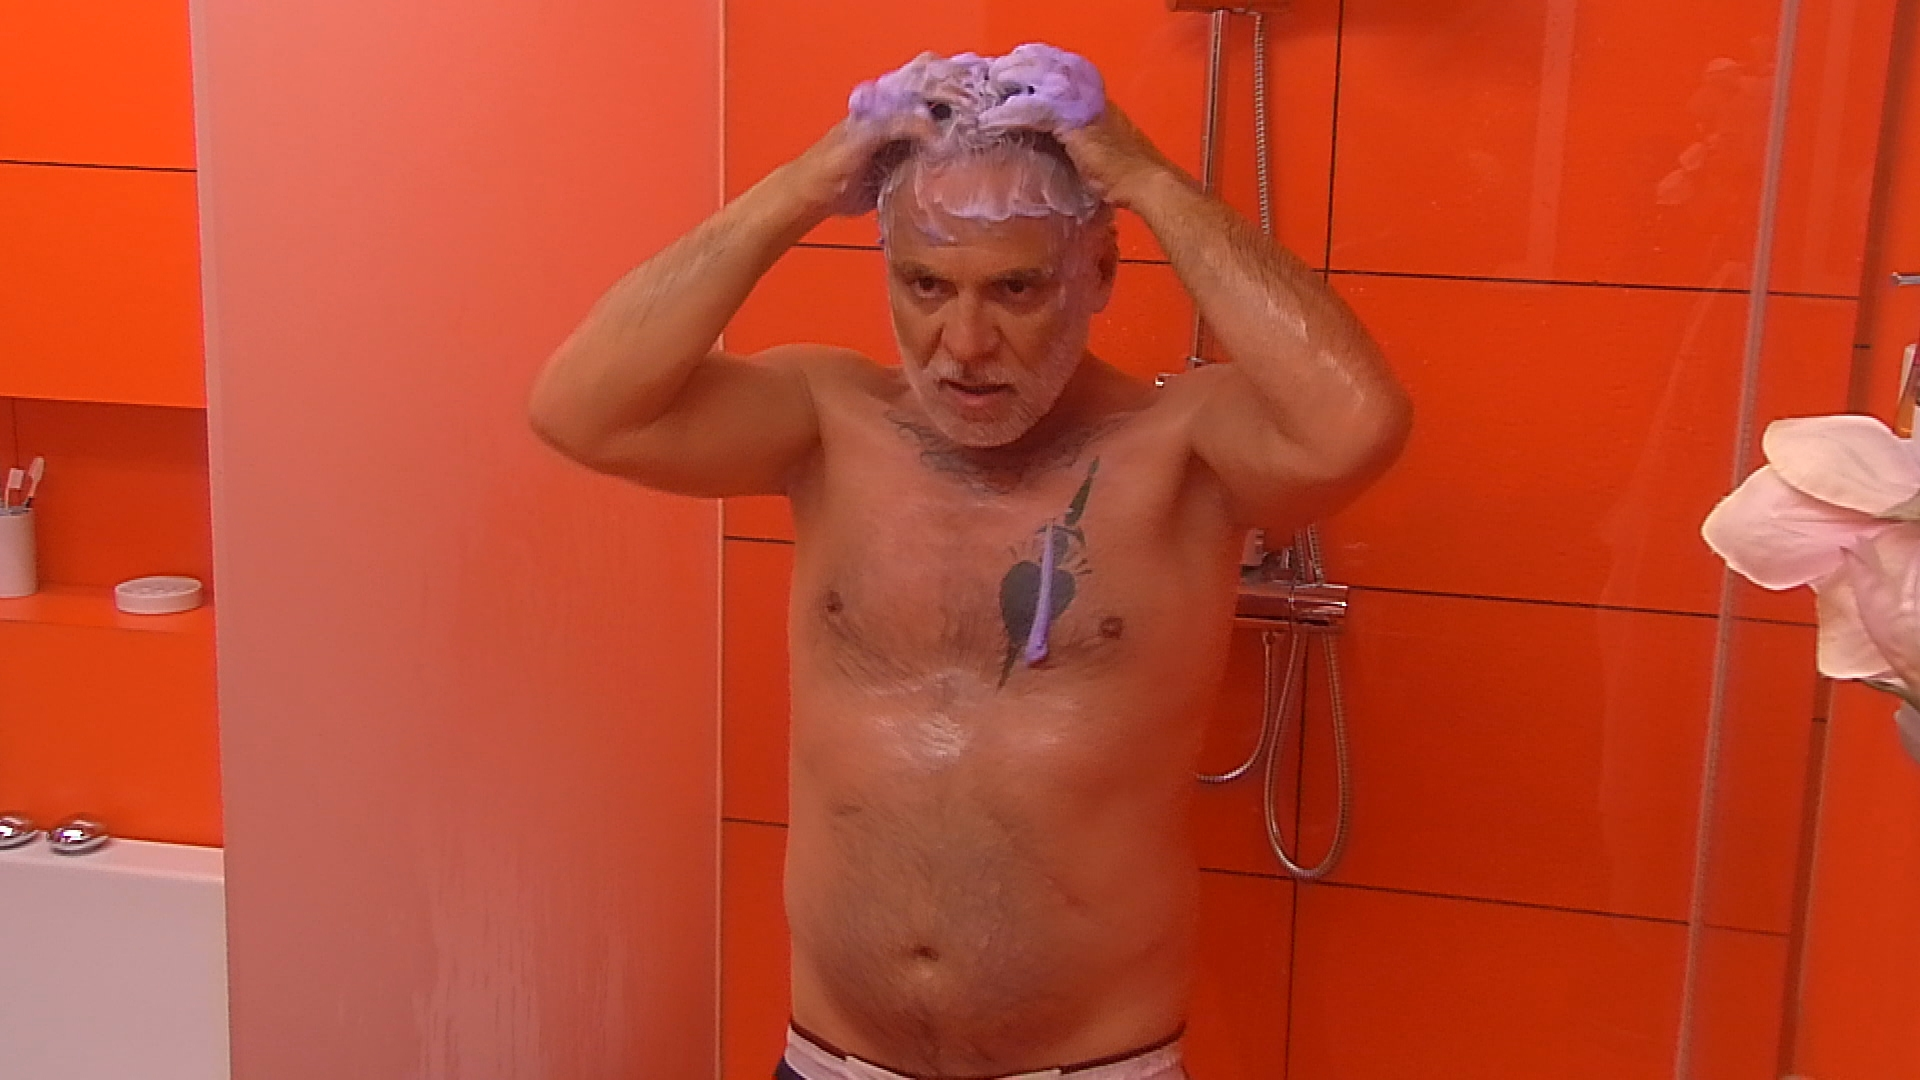 Angelo Nackt promi big brother 2015 nackt: bilder & videos